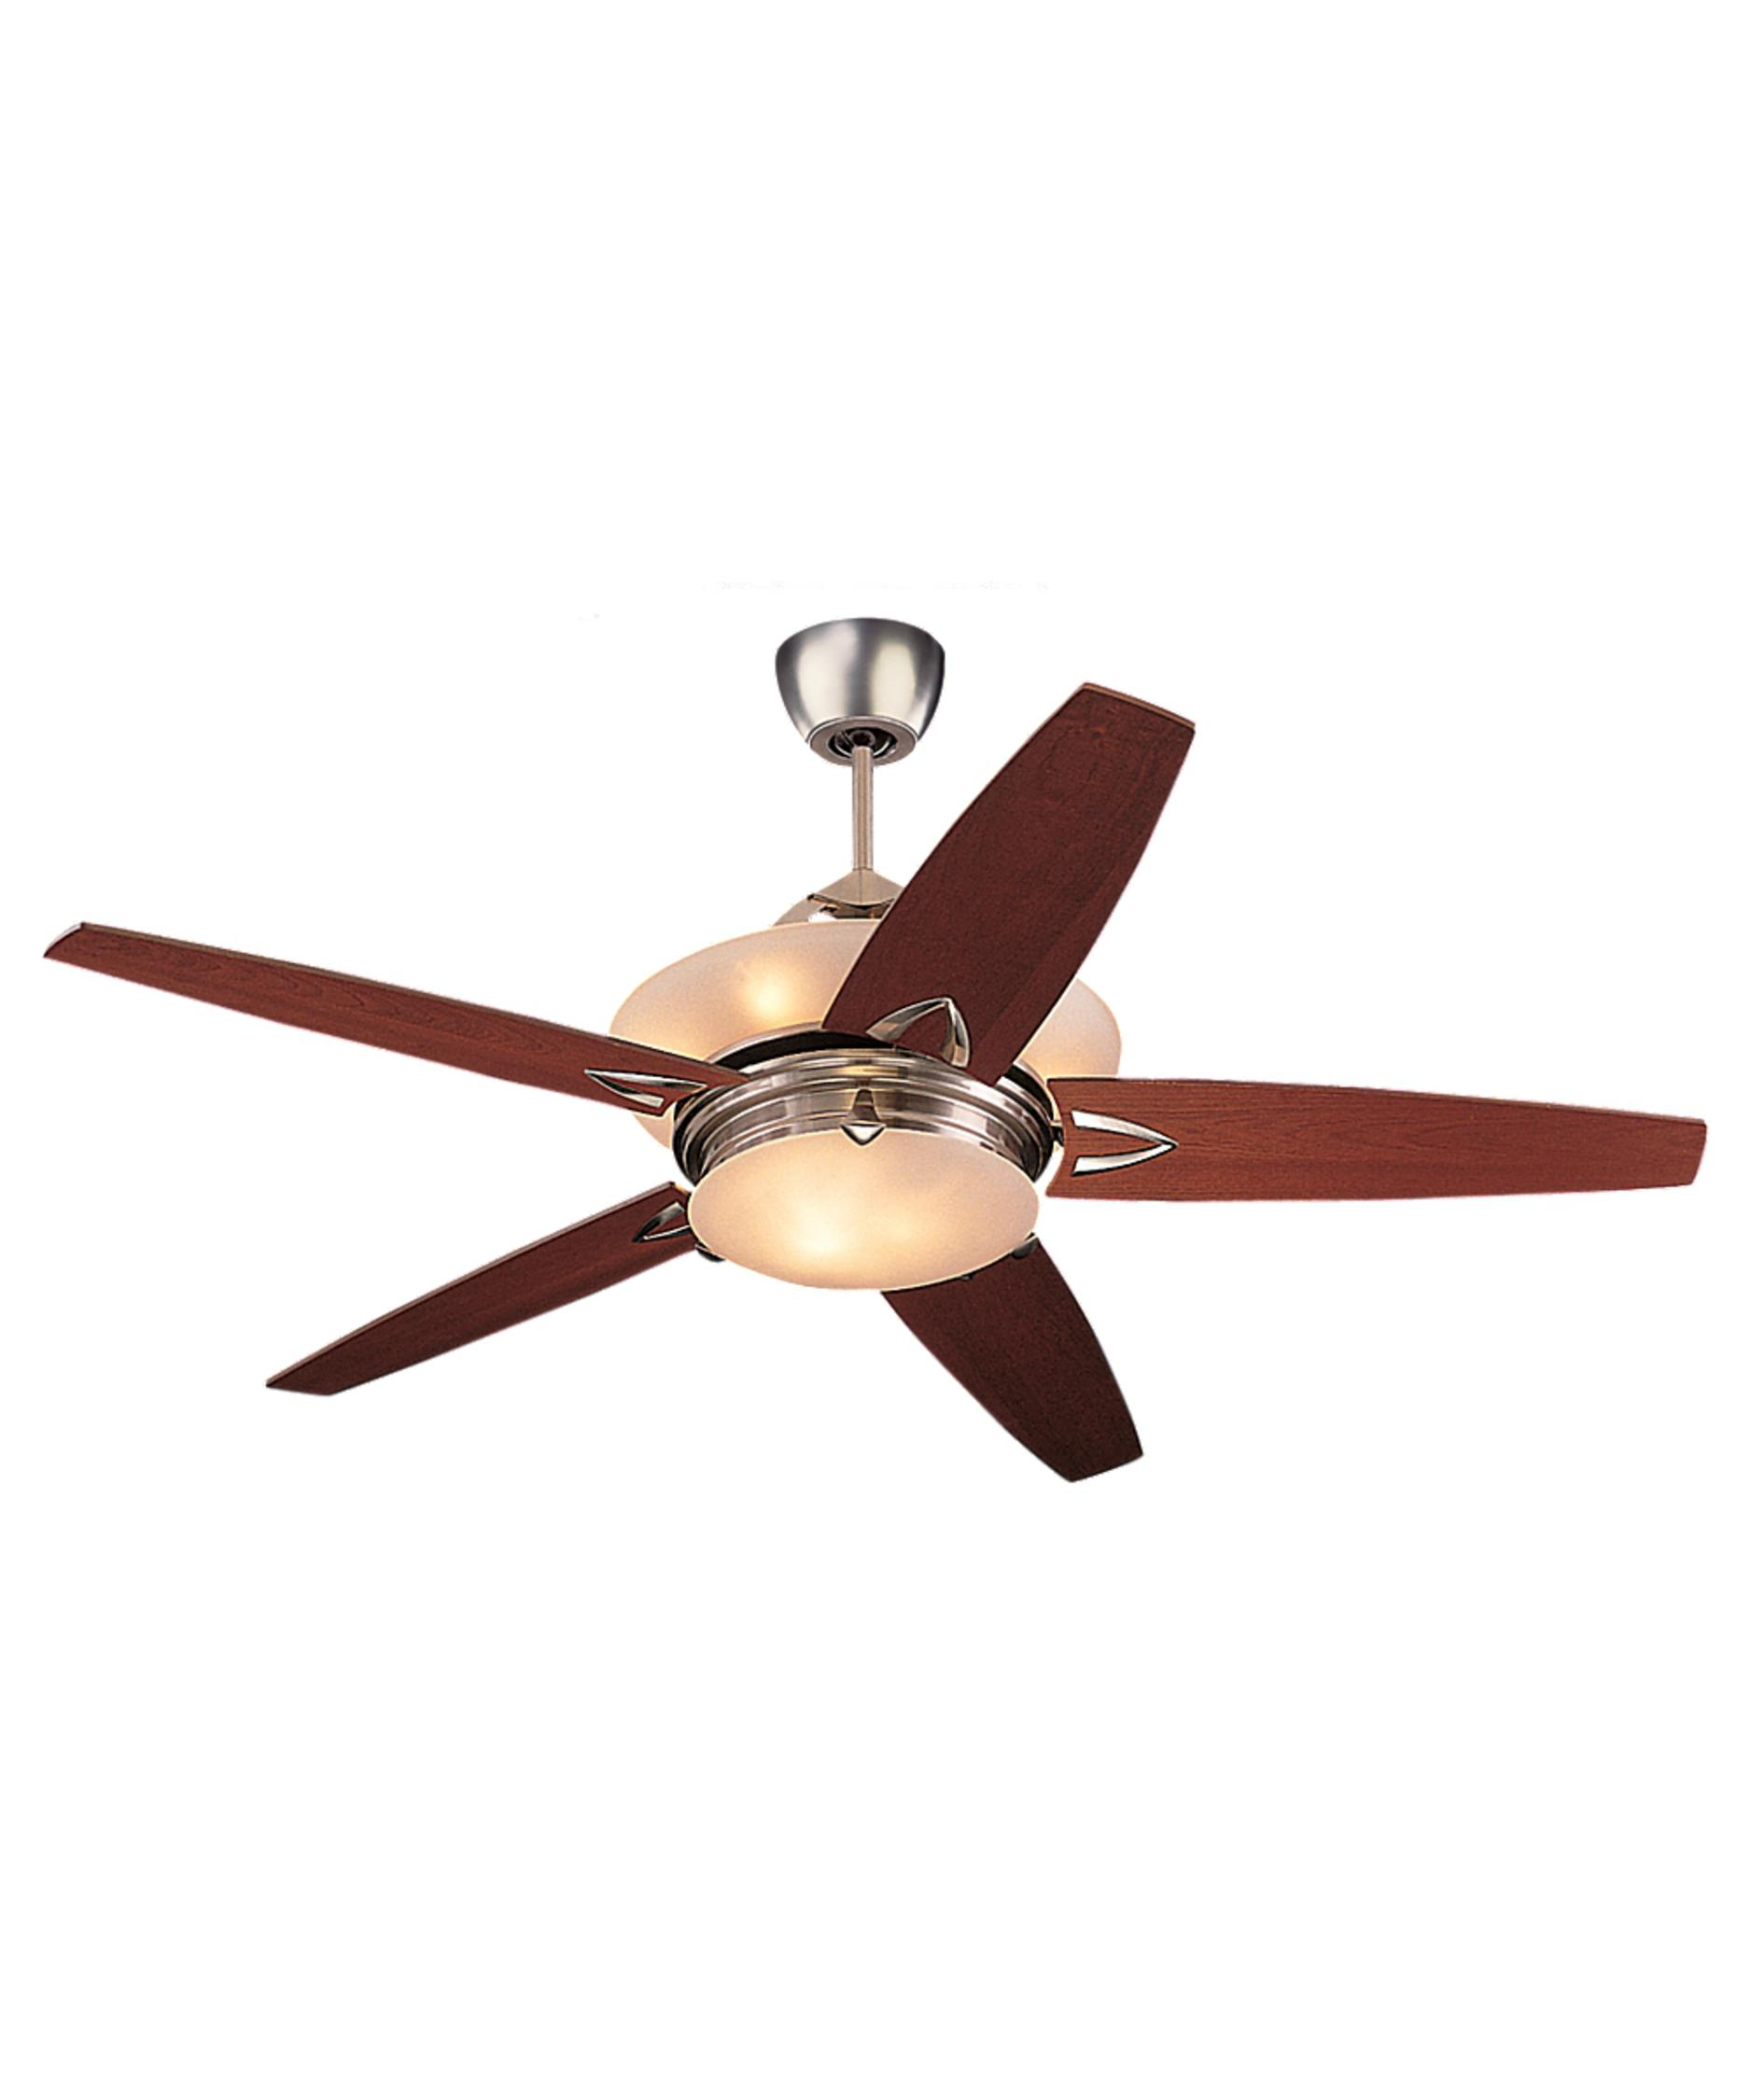 Murray Feiss Ceiling Fan Light Kit: Monte Carlo 5AHR60 Arch 60 Inch Ceiling Fan With Light Kit